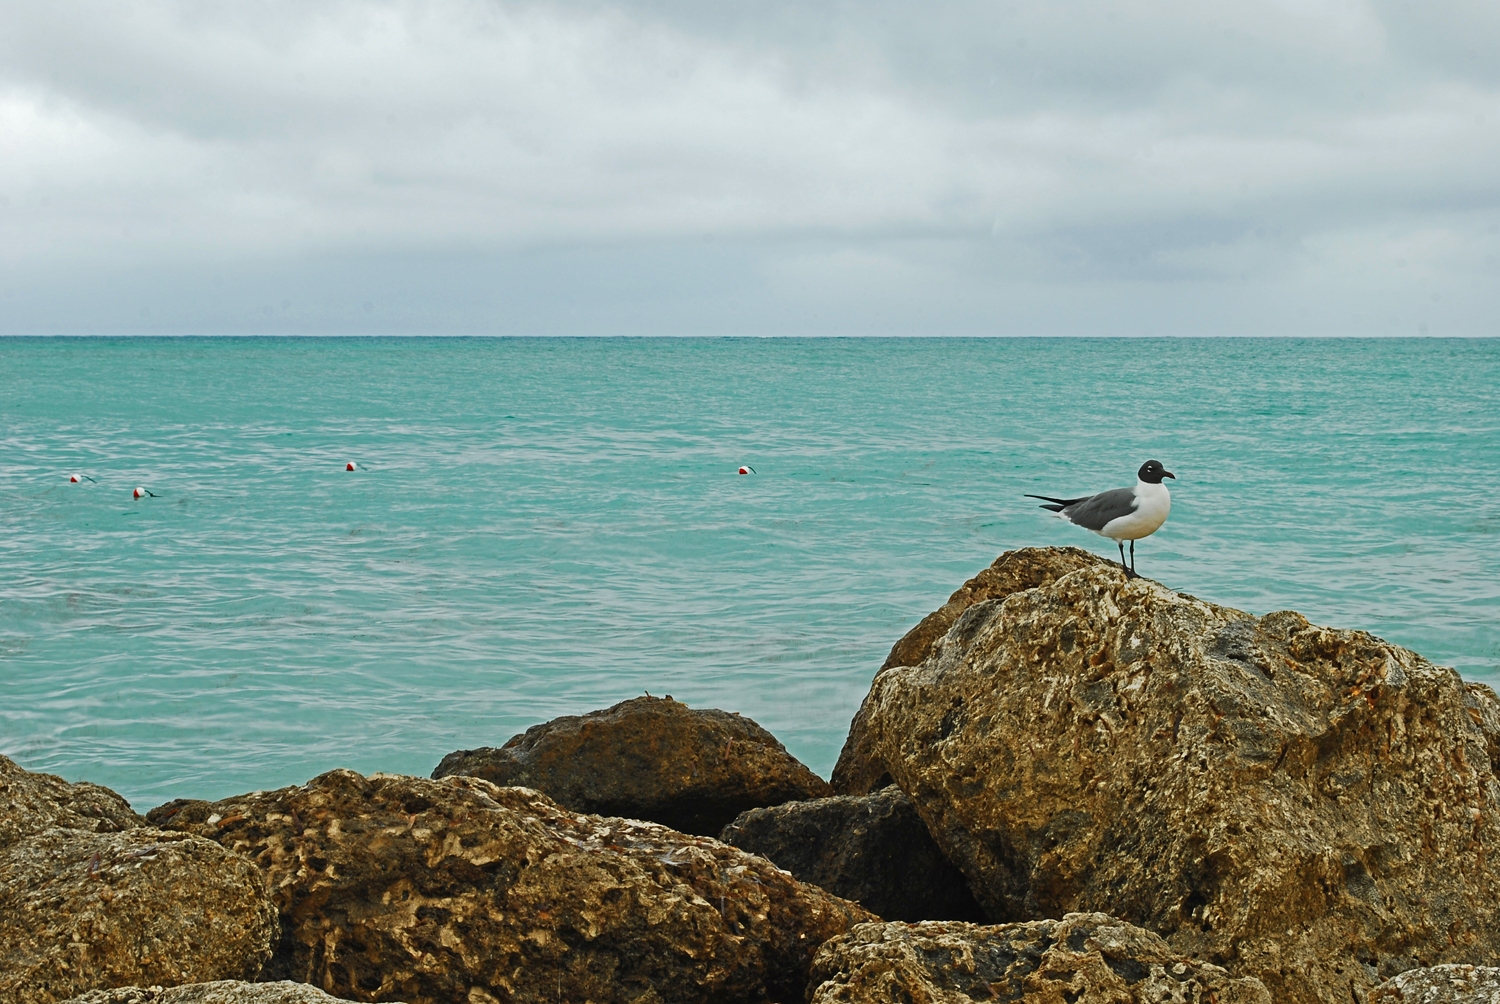 Bahamas, Beach, Seagull, Water